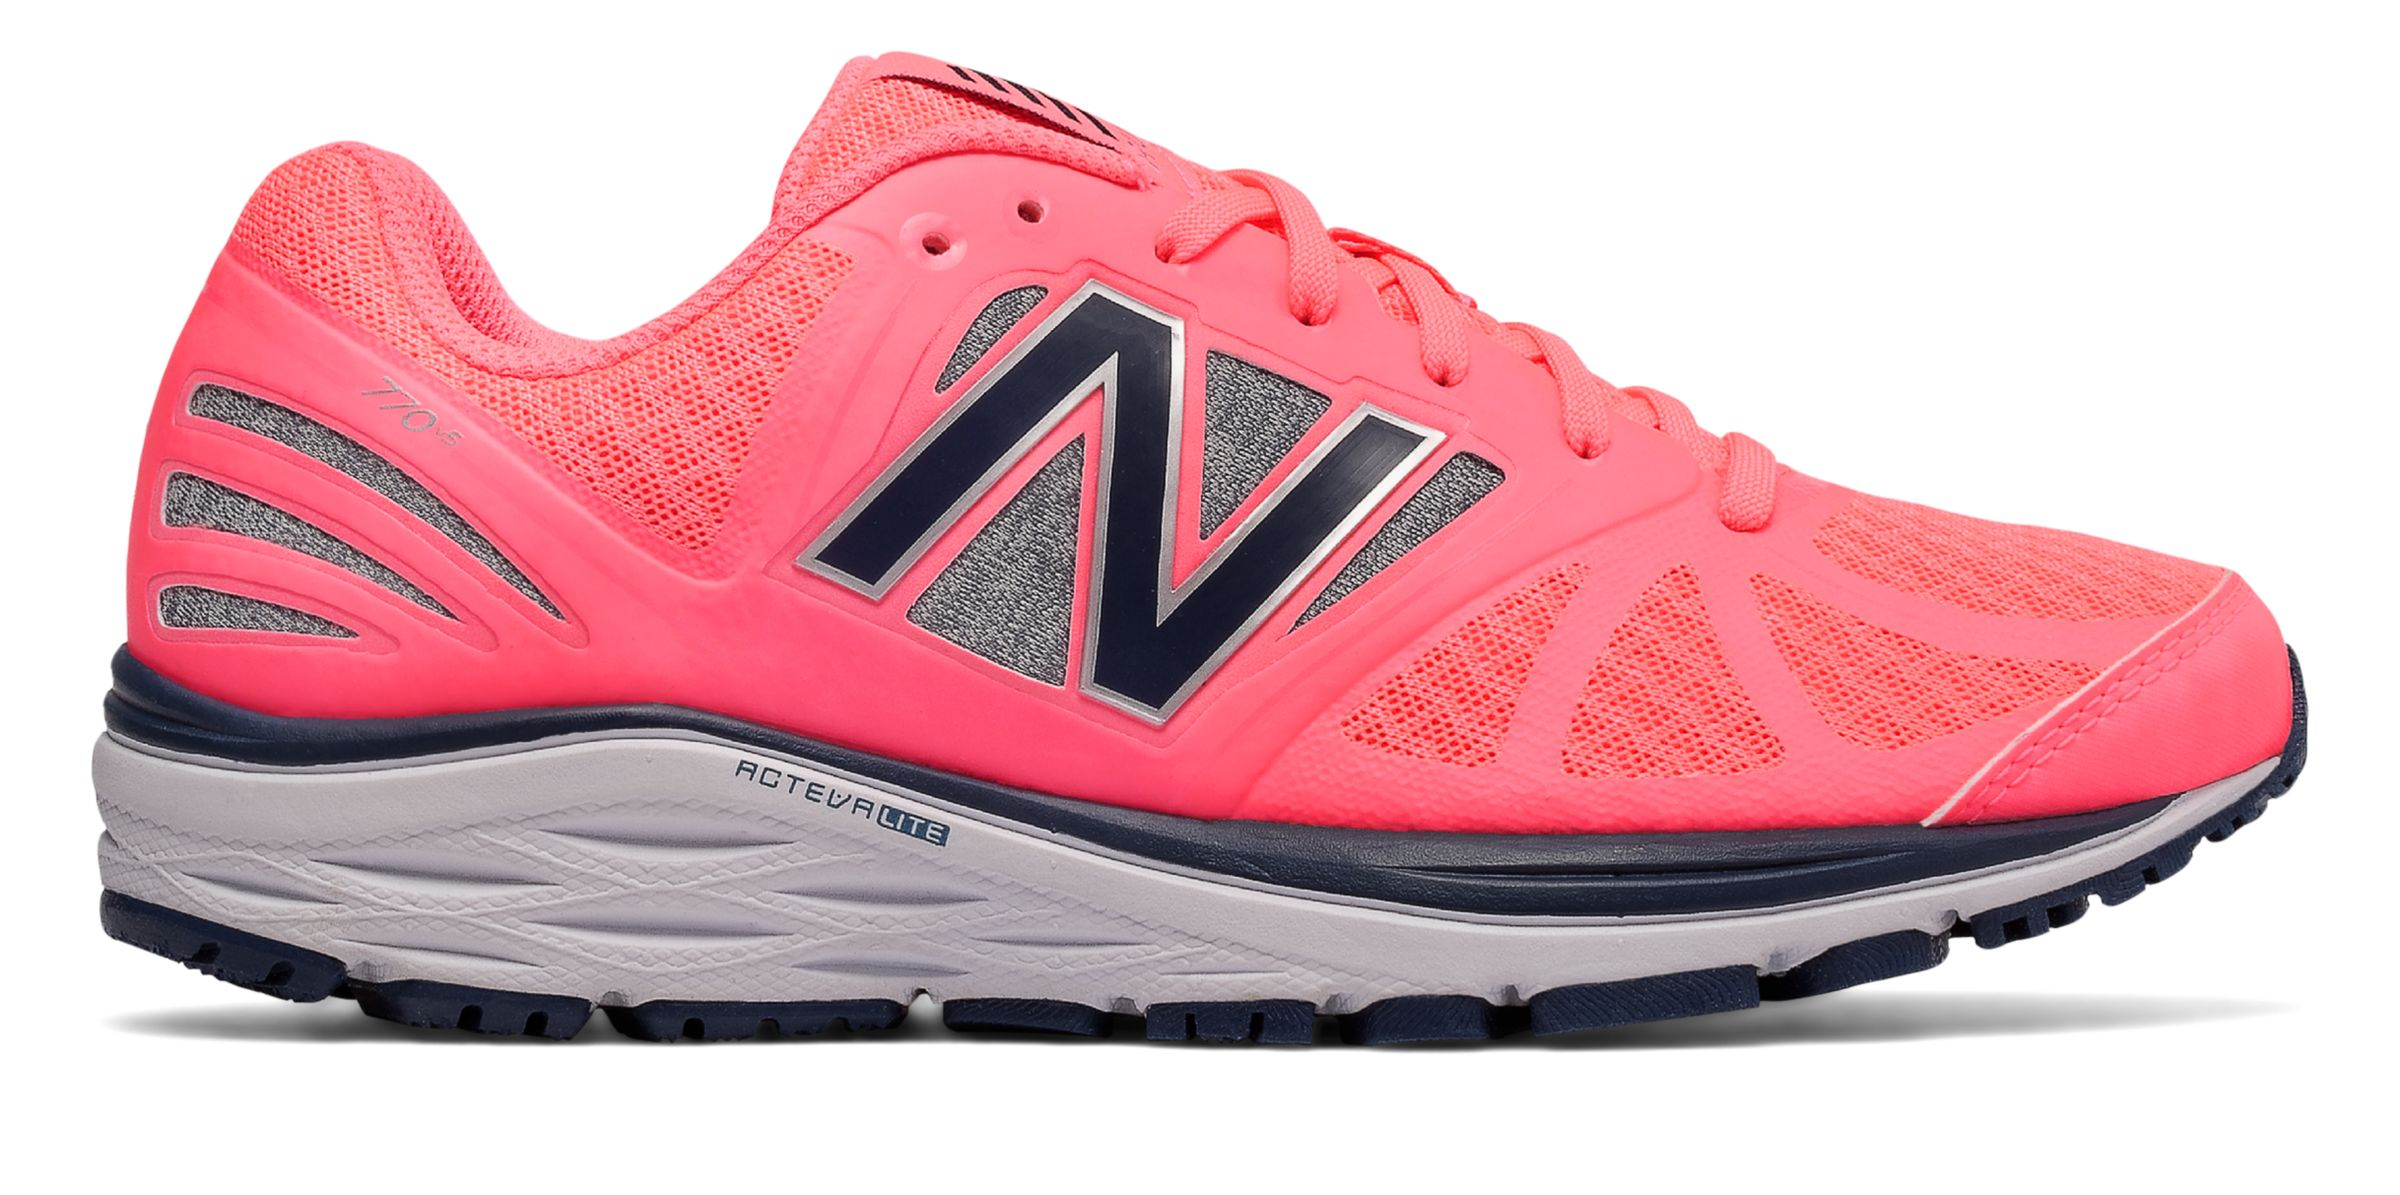 New Balance : New Balance 770v5 : Women's Stability and Motion Control : W770PG5